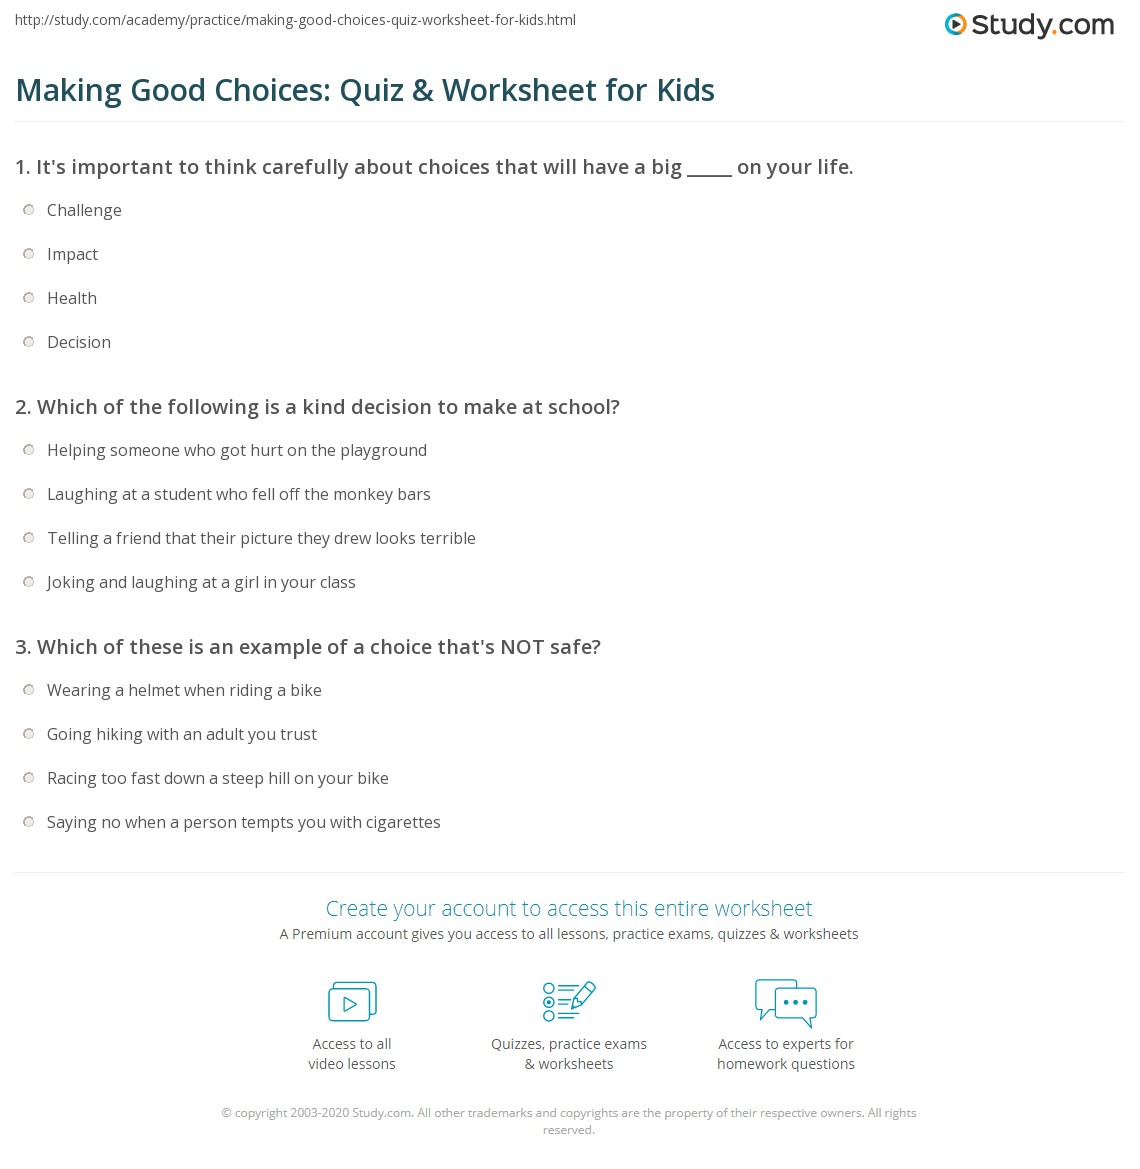 Free Worksheet Making Good Choices Worksheets making good choices quiz worksheet for kids study com print lesson worksheet